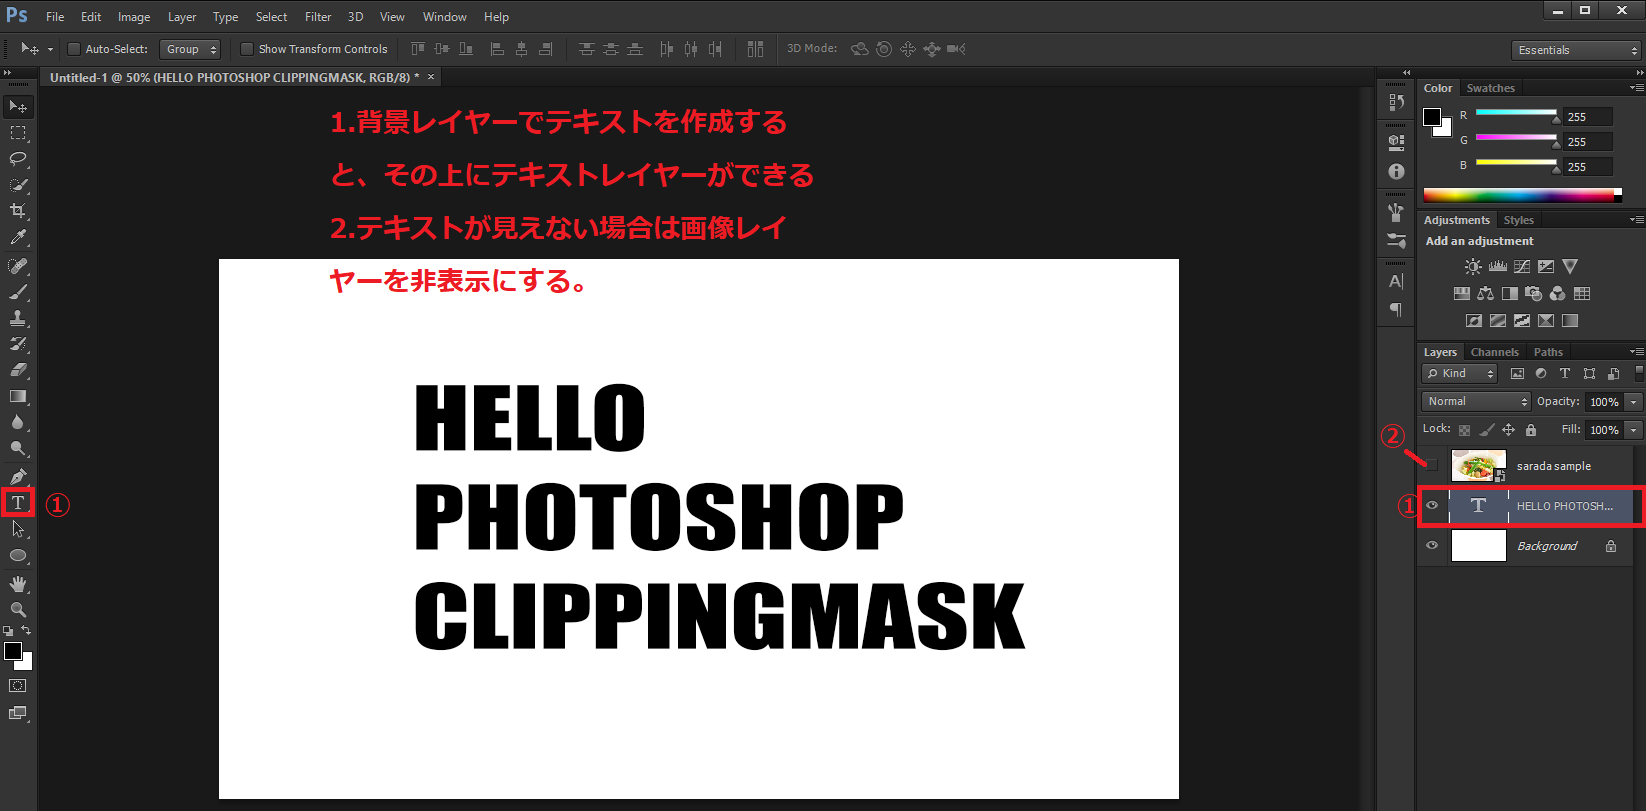 photoshop clippingmask(4)